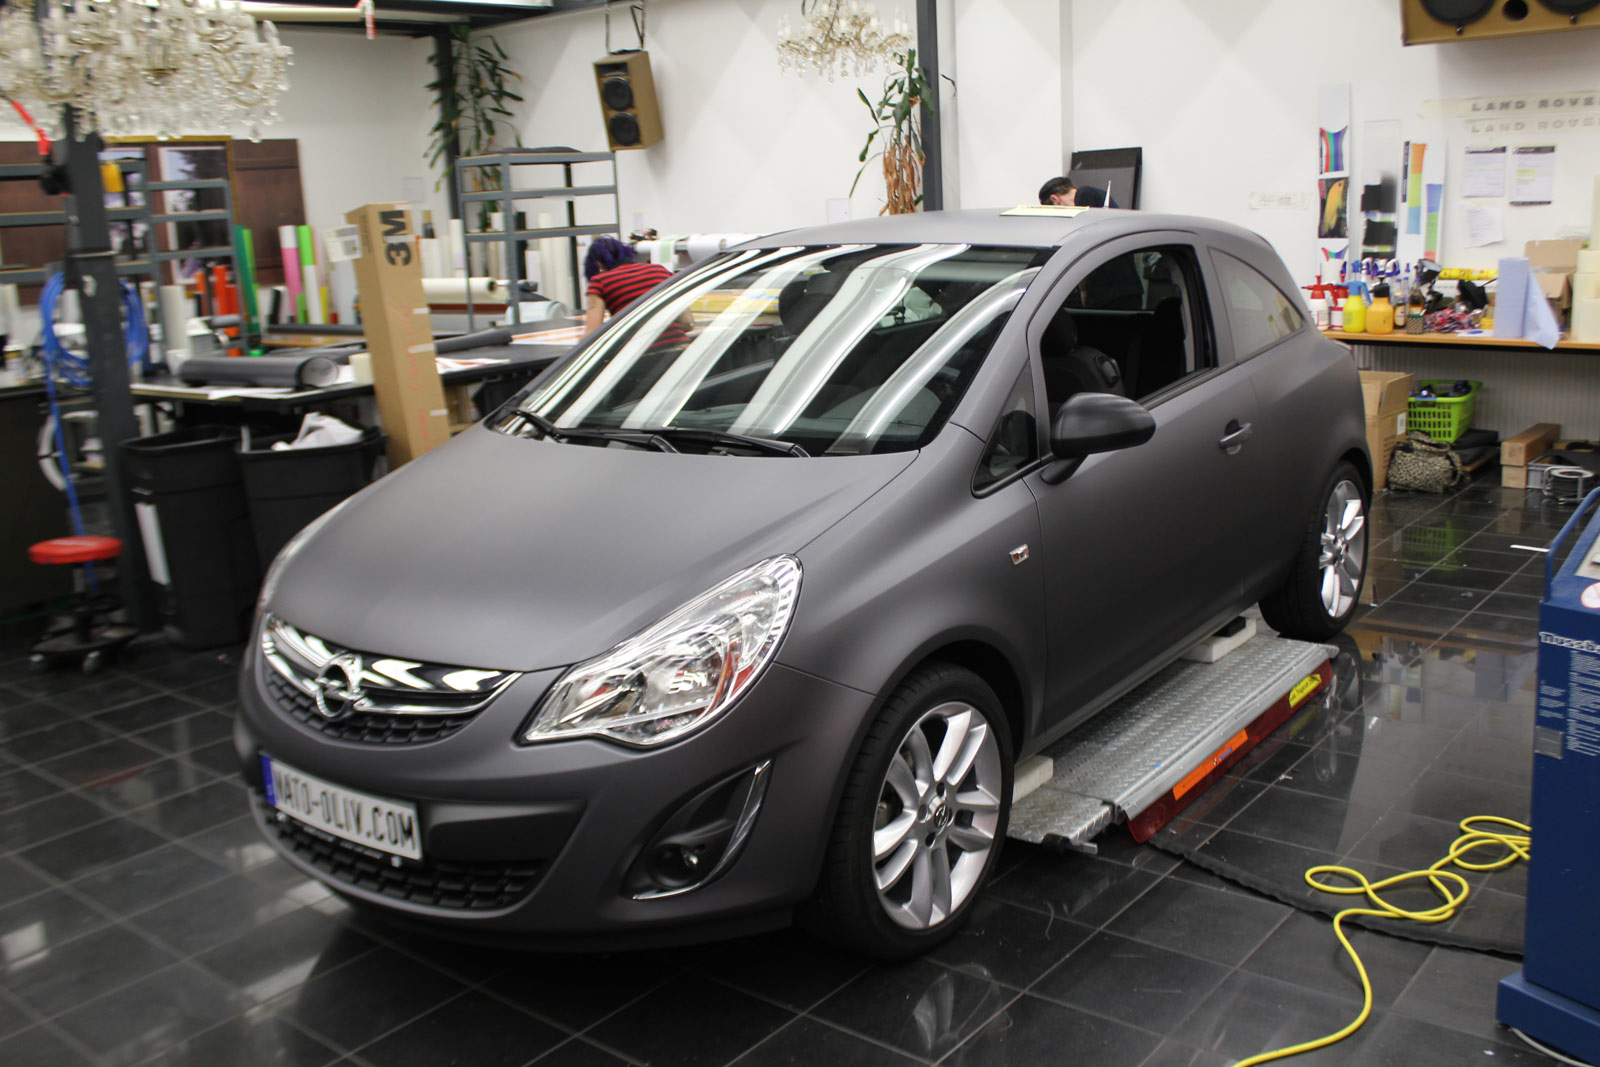 OPEL_CORSA_ANTHRAZIT_MATT_METALLIC_EXTRAS_CARBON_09